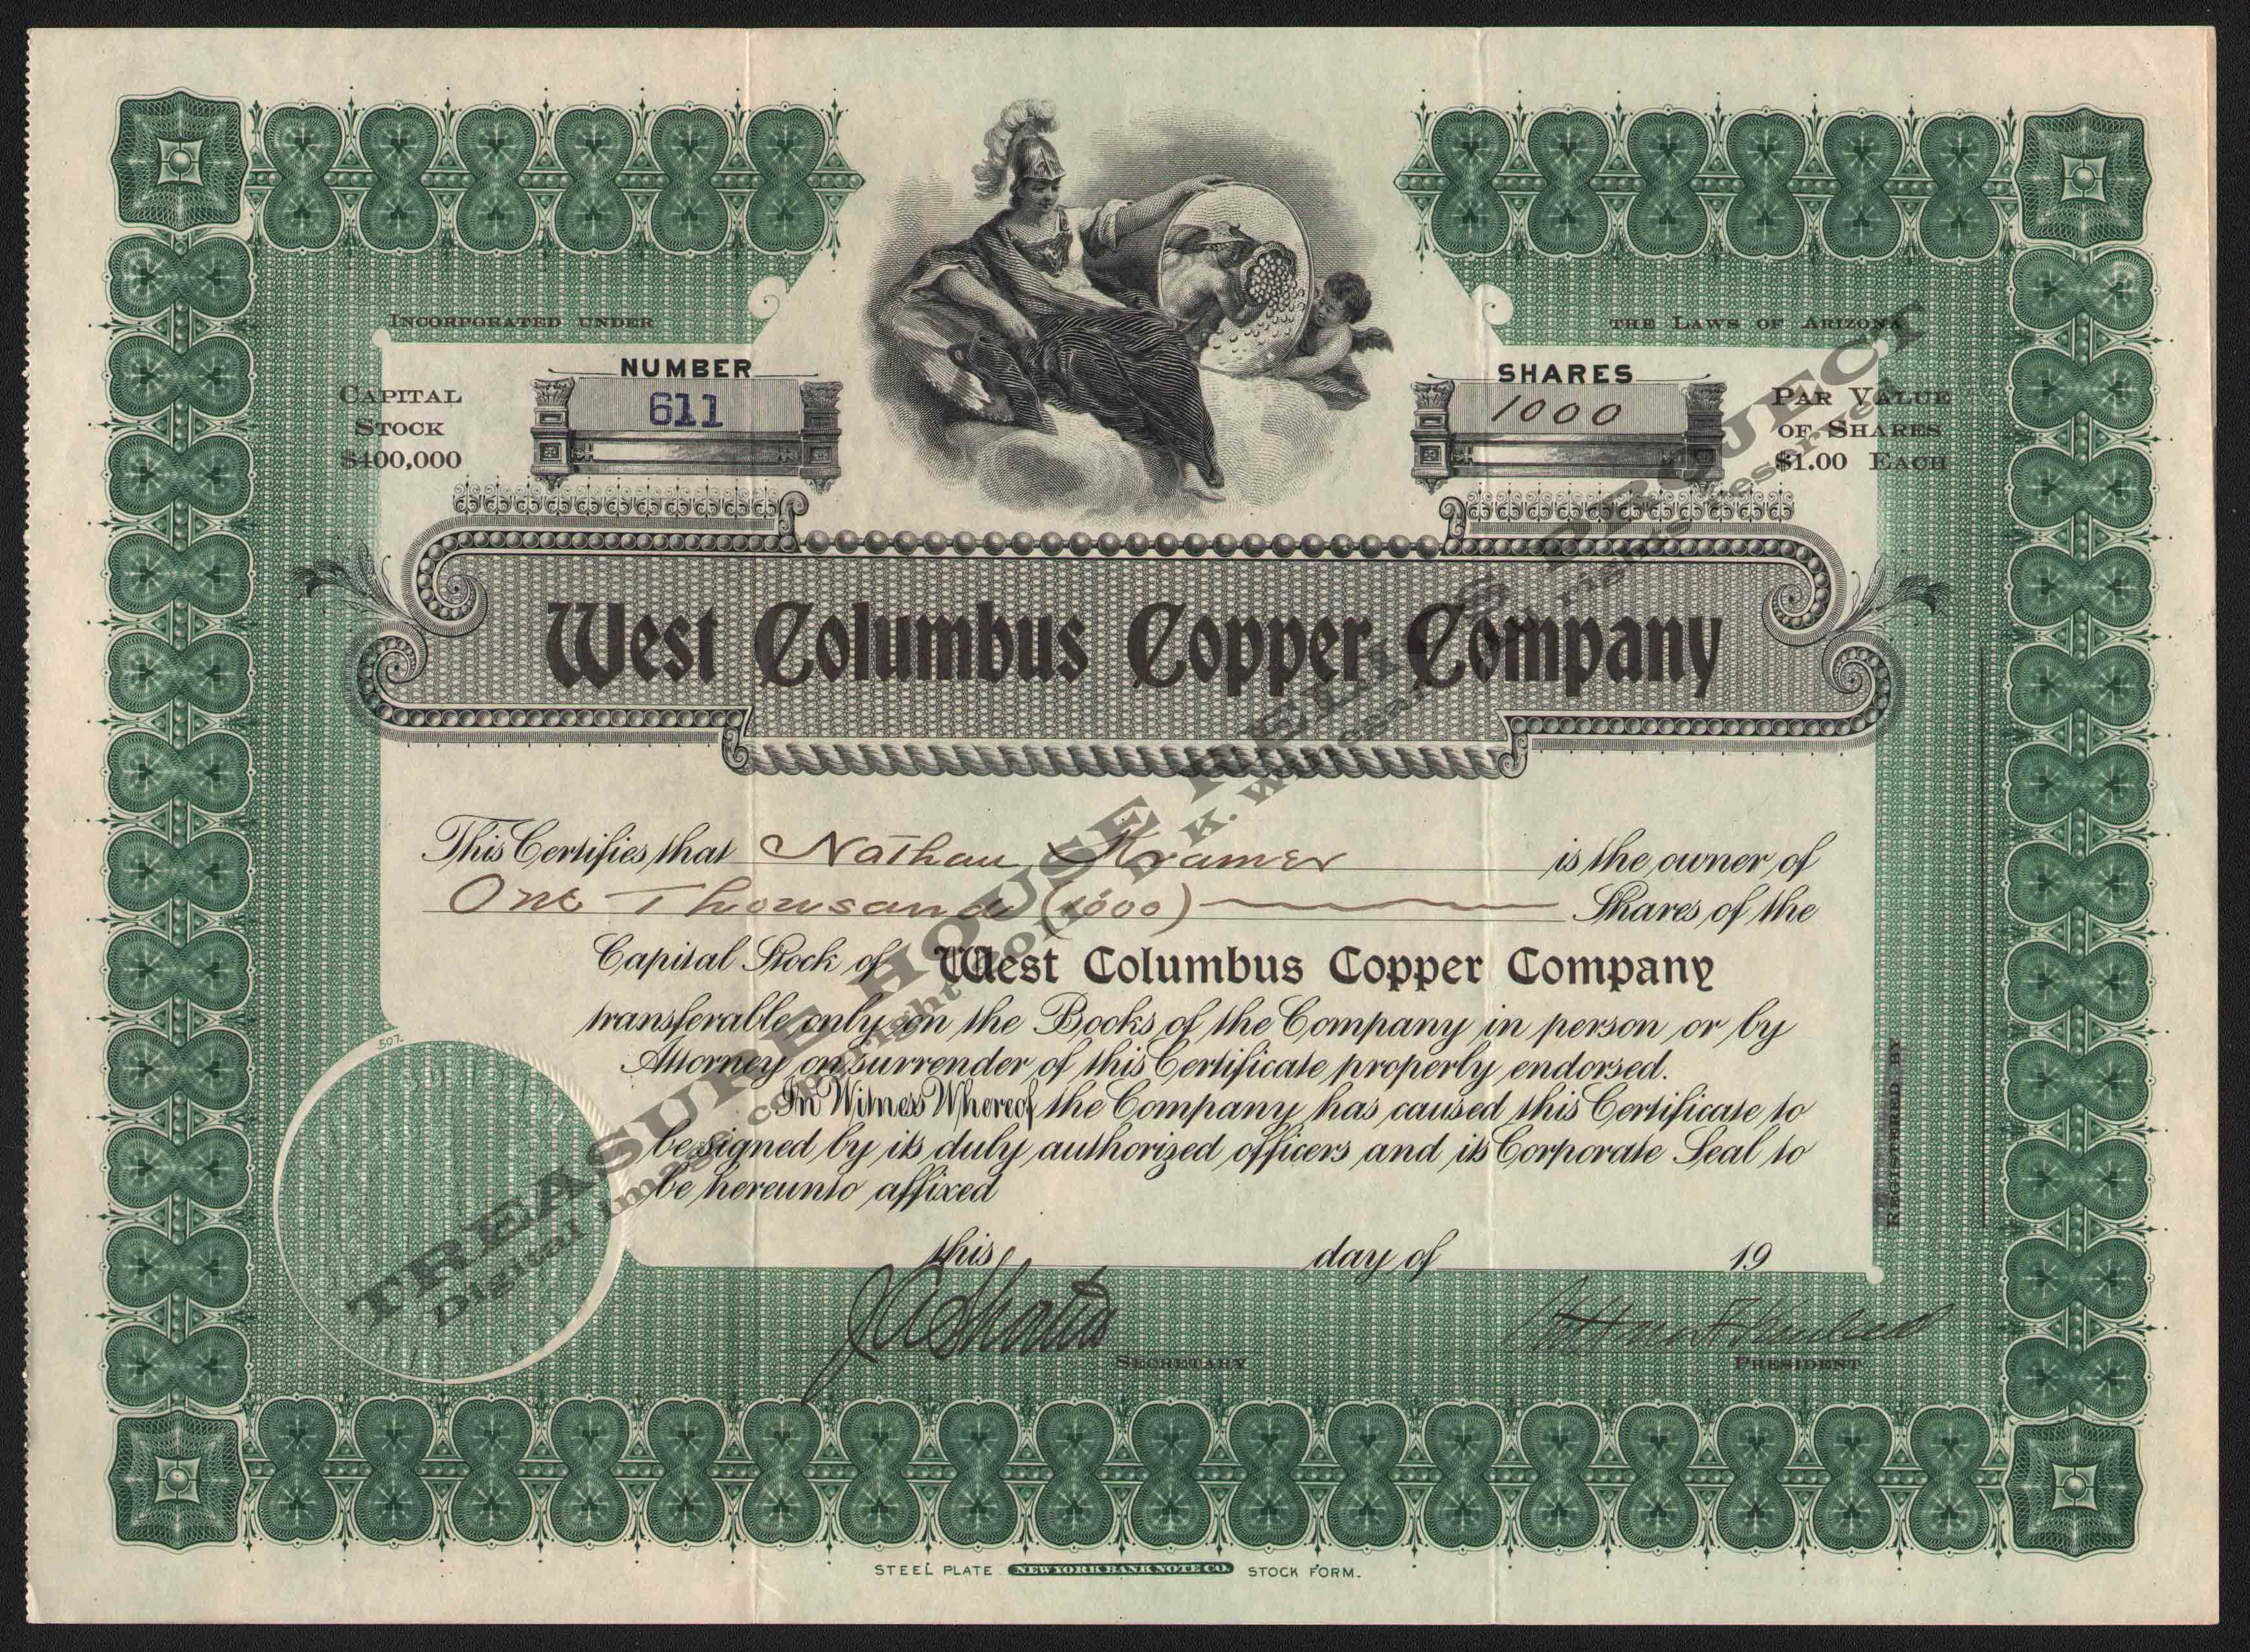 WEST_COLUMBUS_COPPER_COMPANY_611_1908_300_EMBOSS.jpg